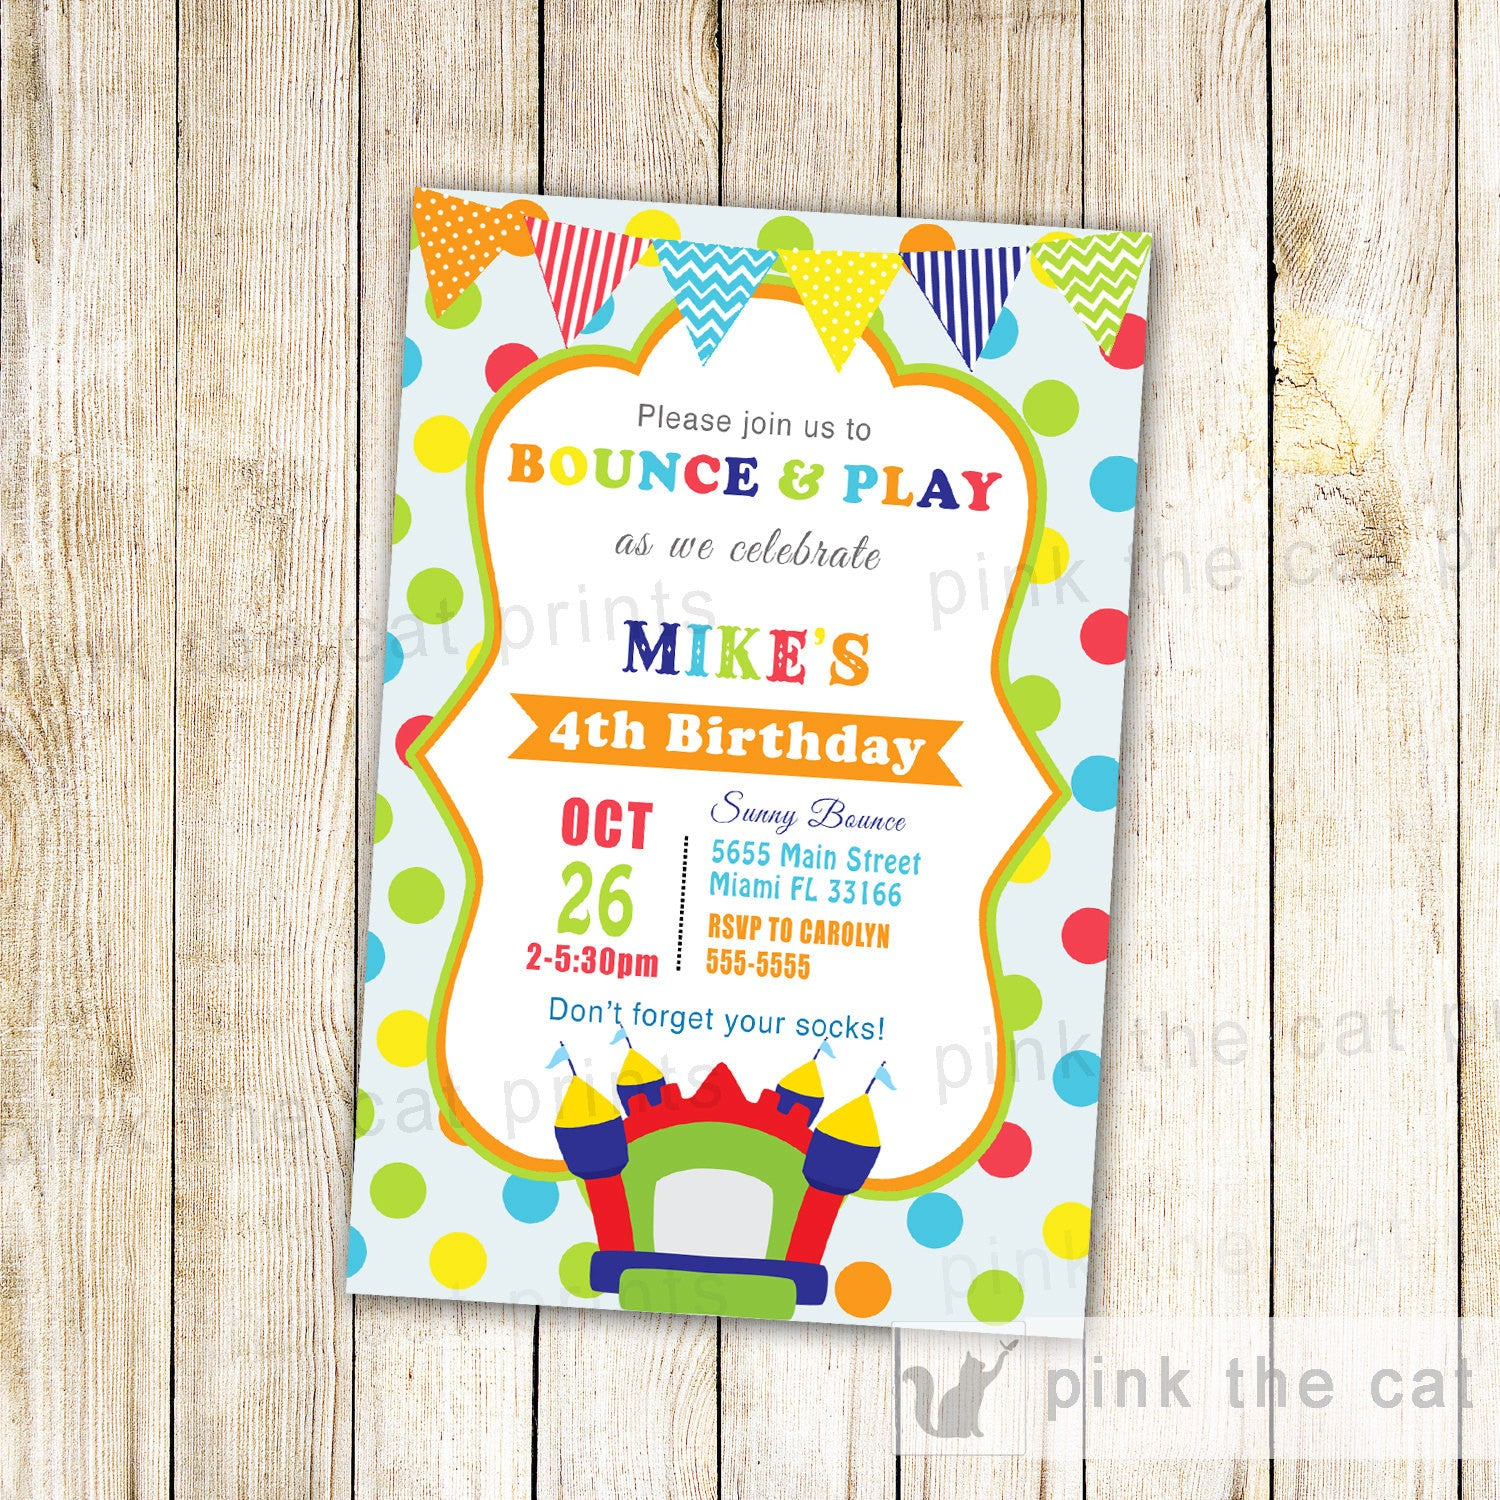 Bouncing Castle Birthday Party Invitation – Pink The Cat